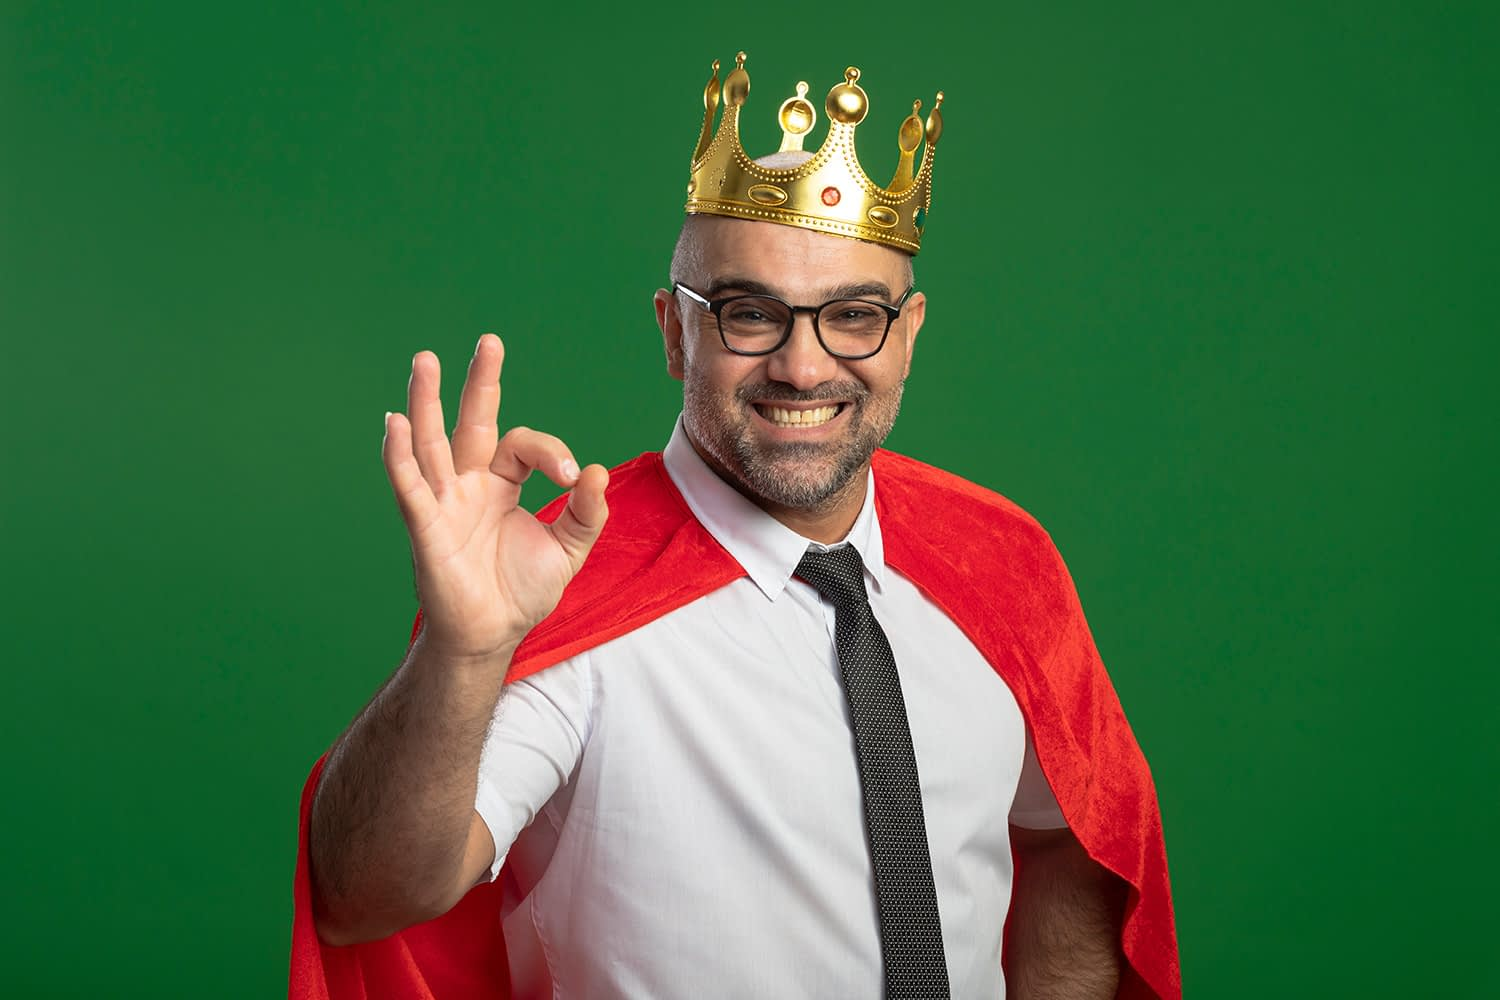 Super hero businessman in red cape and glasses wearing crown looking at front smiling cheerfully showing ok sign standing green white wall.